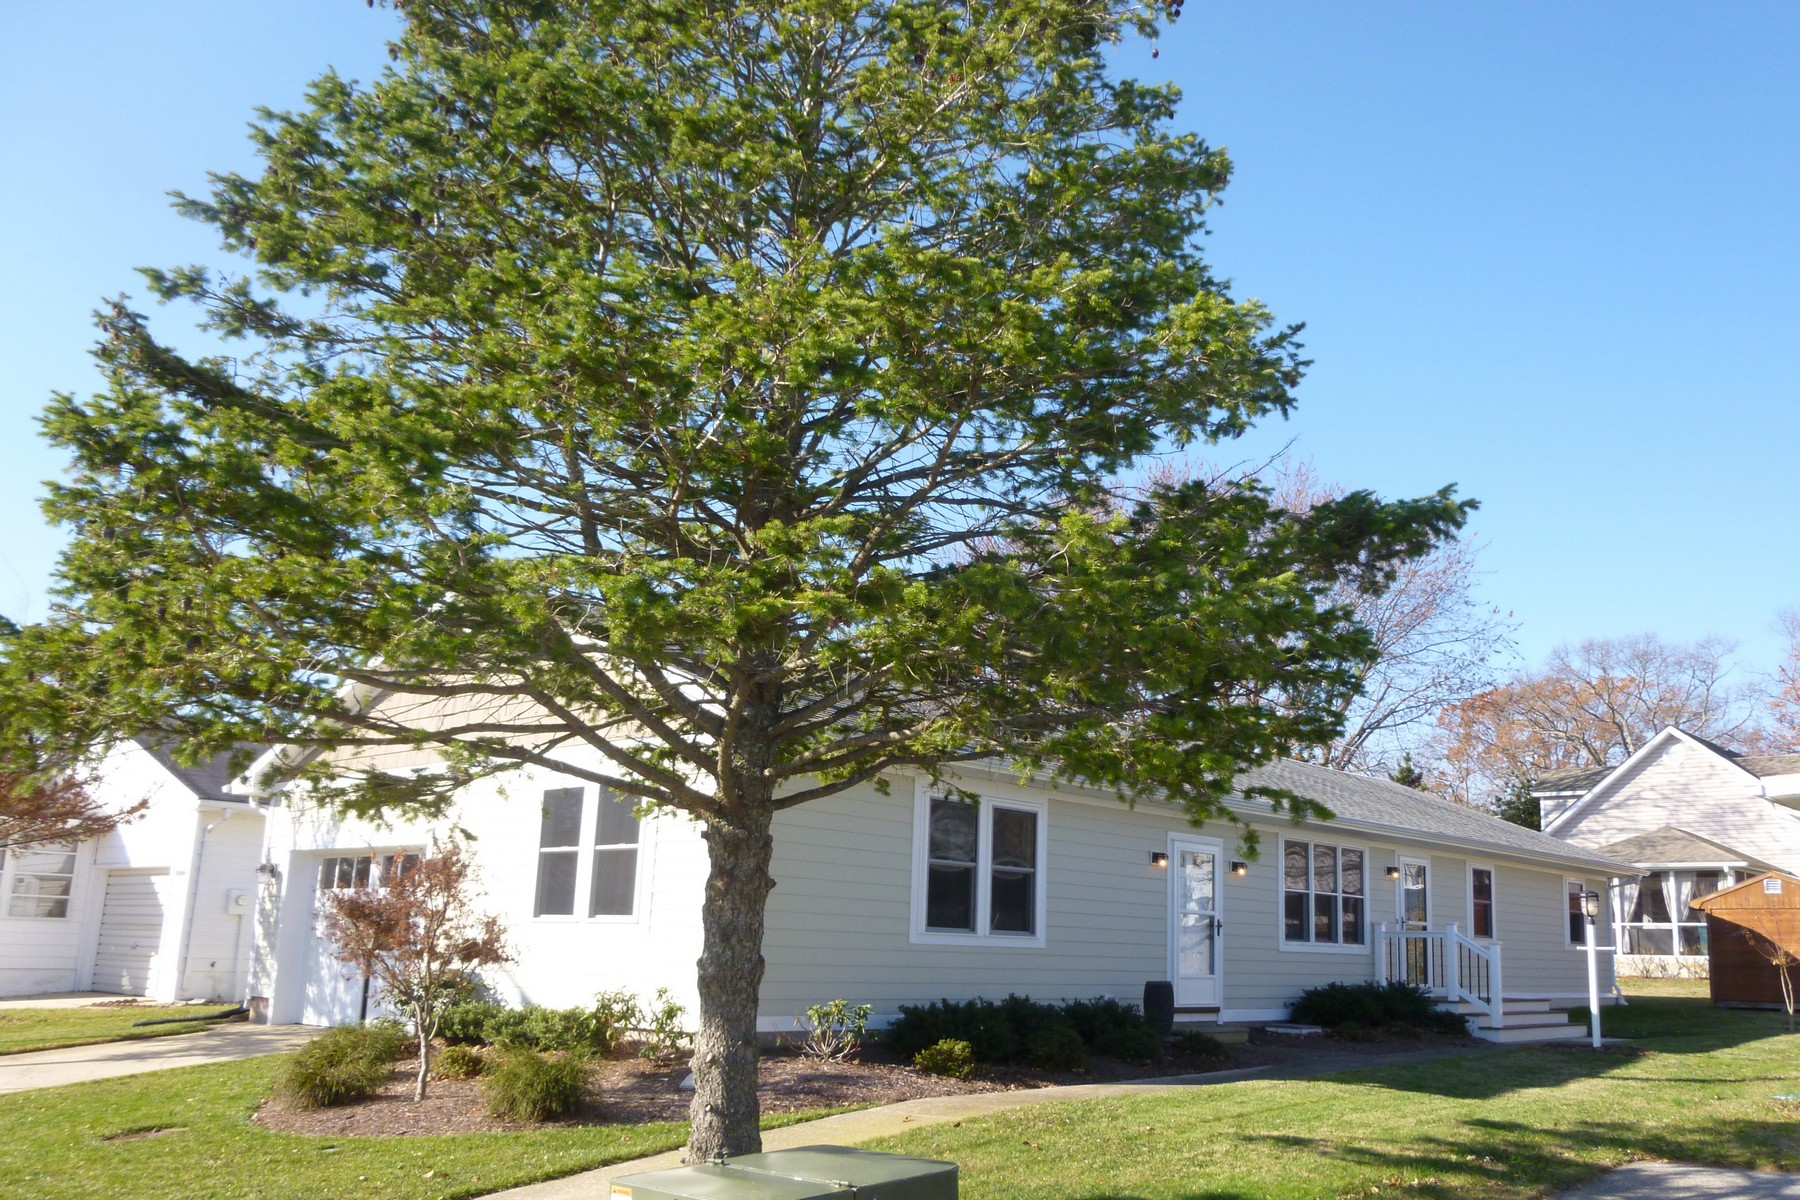 Property For Sale at 309 Country Club Dr, Rehoboth Beach, DE 19971